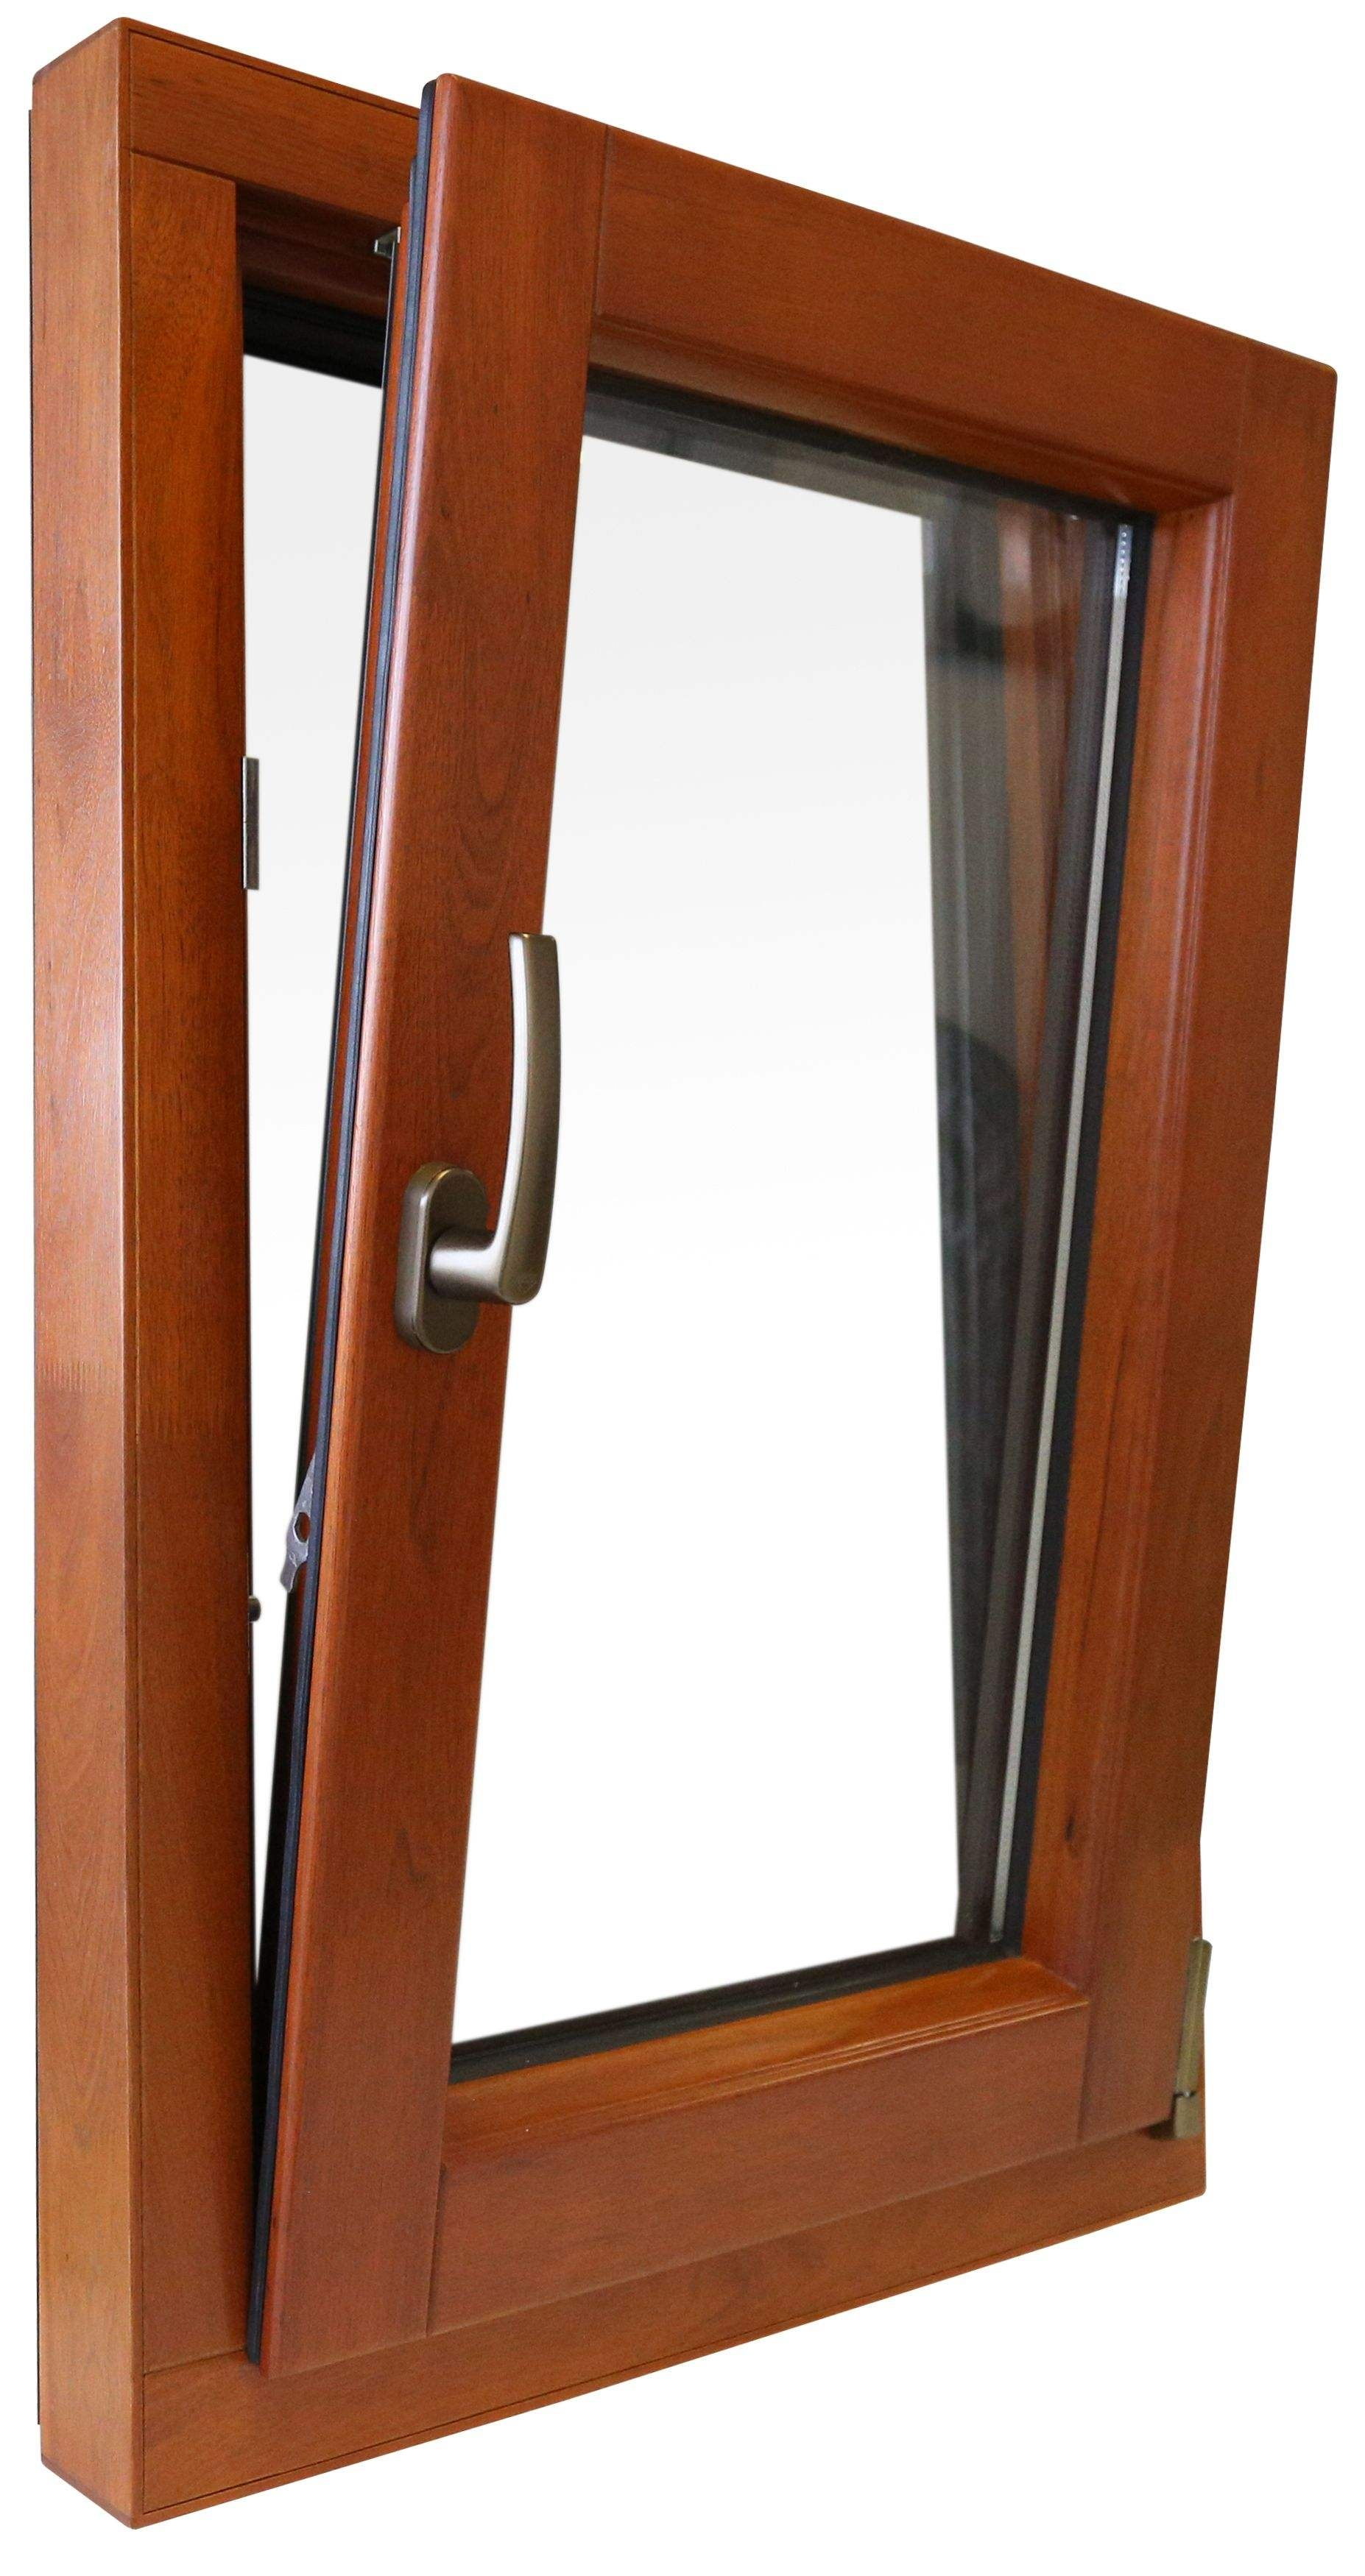 Aluminium Clad Wood Tilt & Turn Window 88 Series